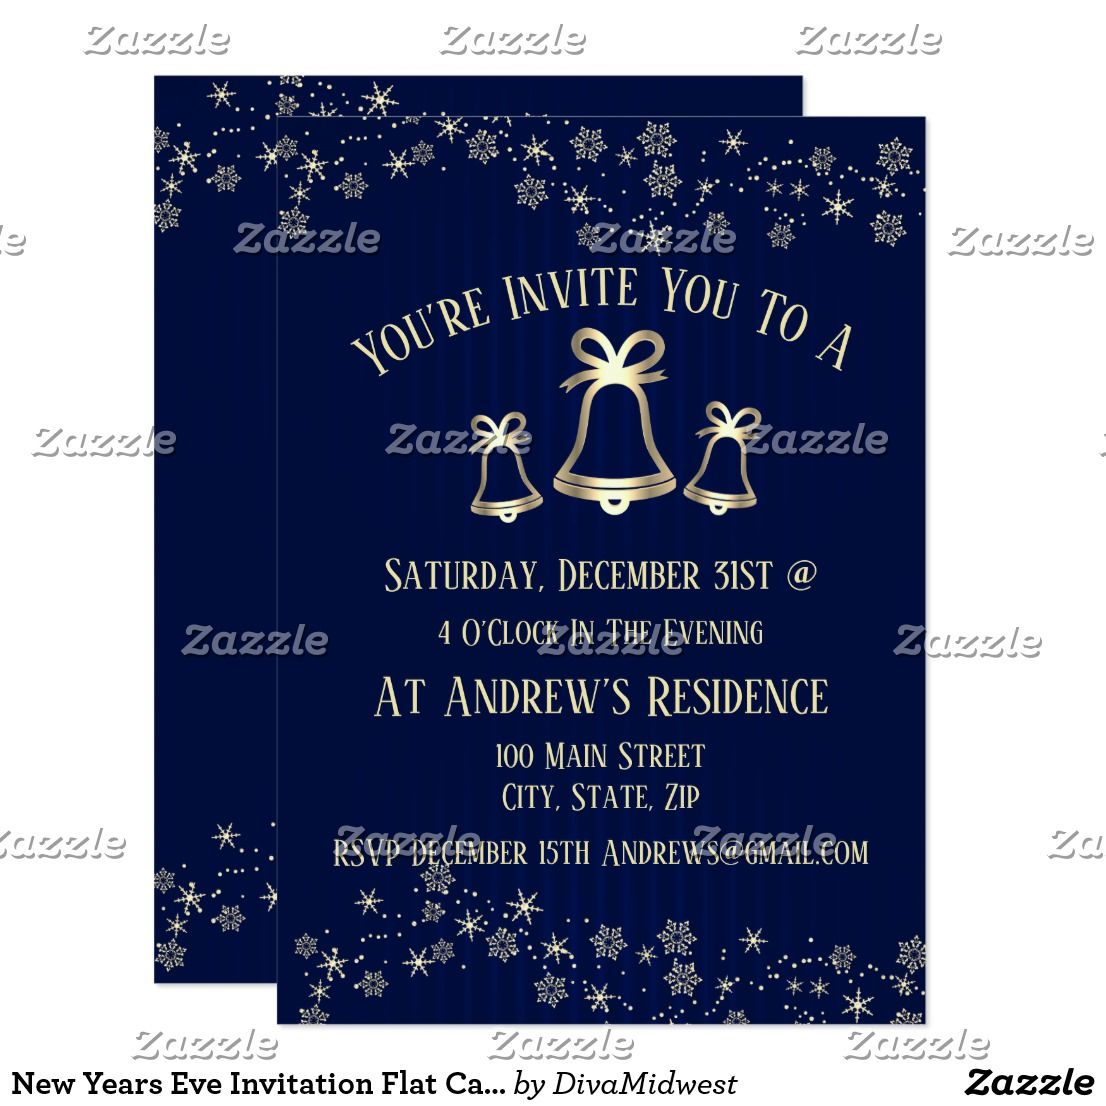 New Years Eve Invitation Flat Card New years eve